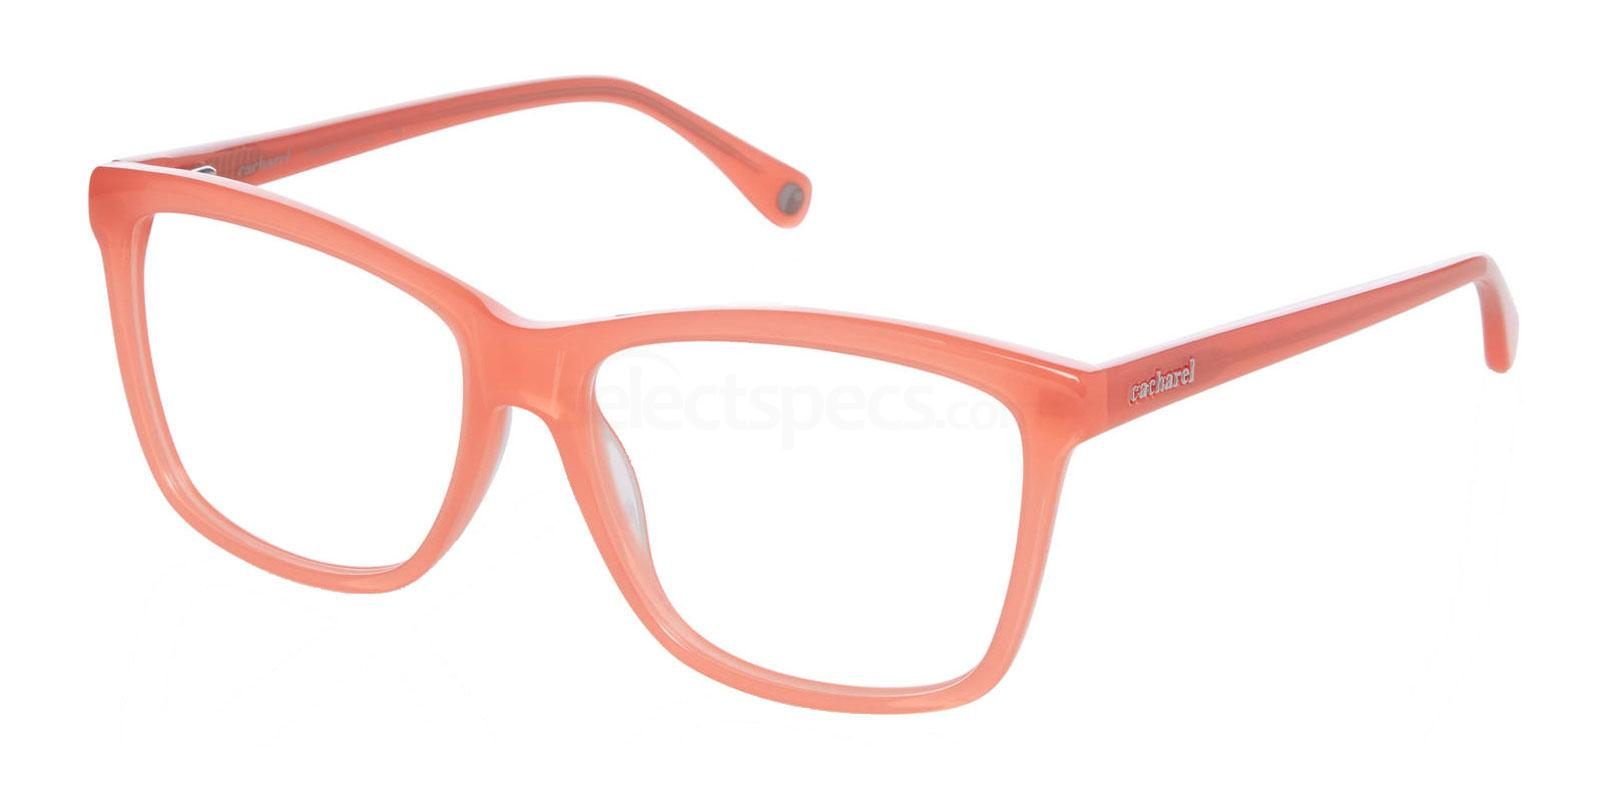 cacharel pink glasses